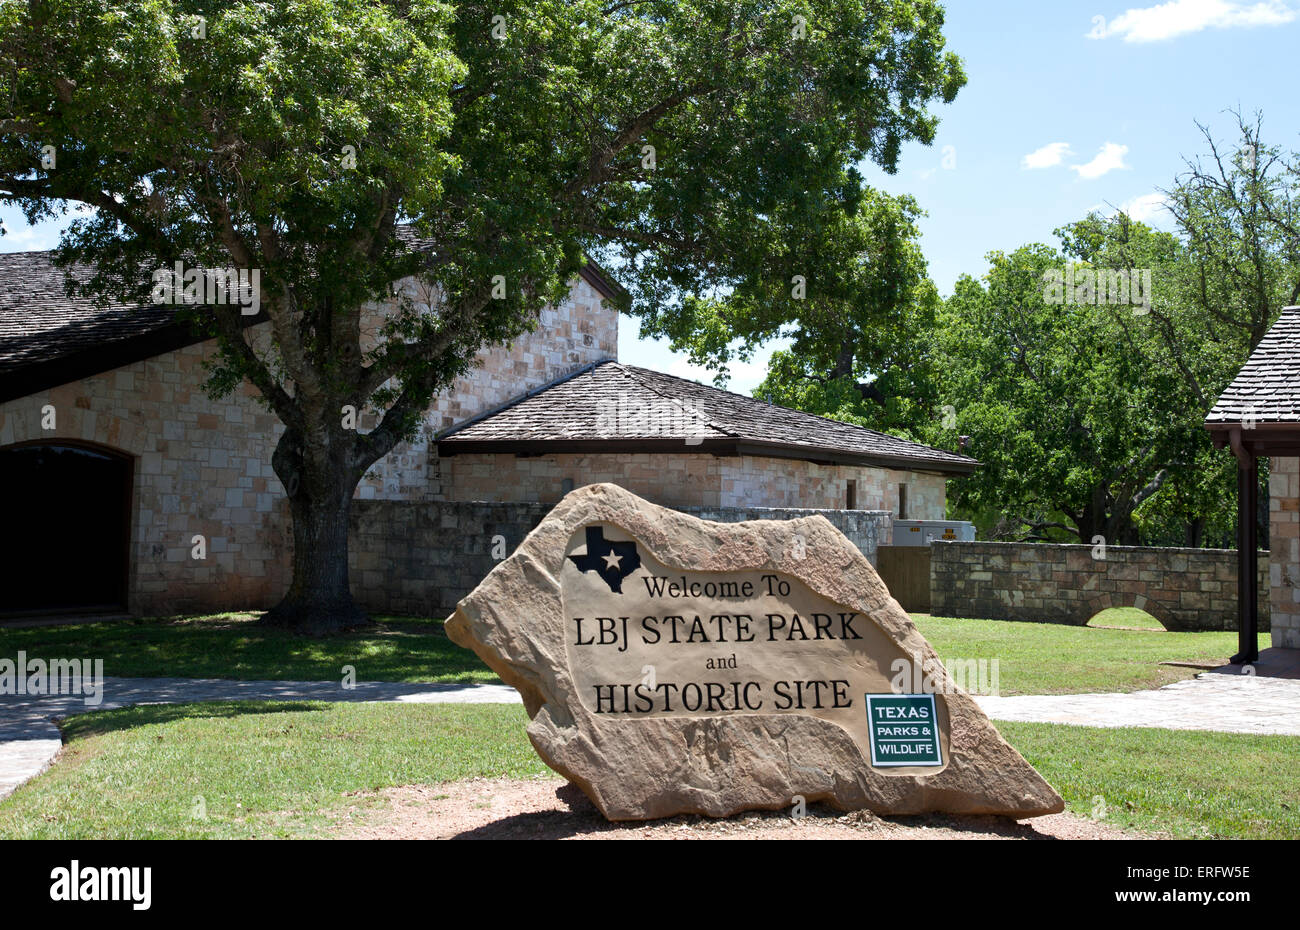 Entrance, LBJ State Park and Historic Site, Stonewall, Texas. Stock Photo